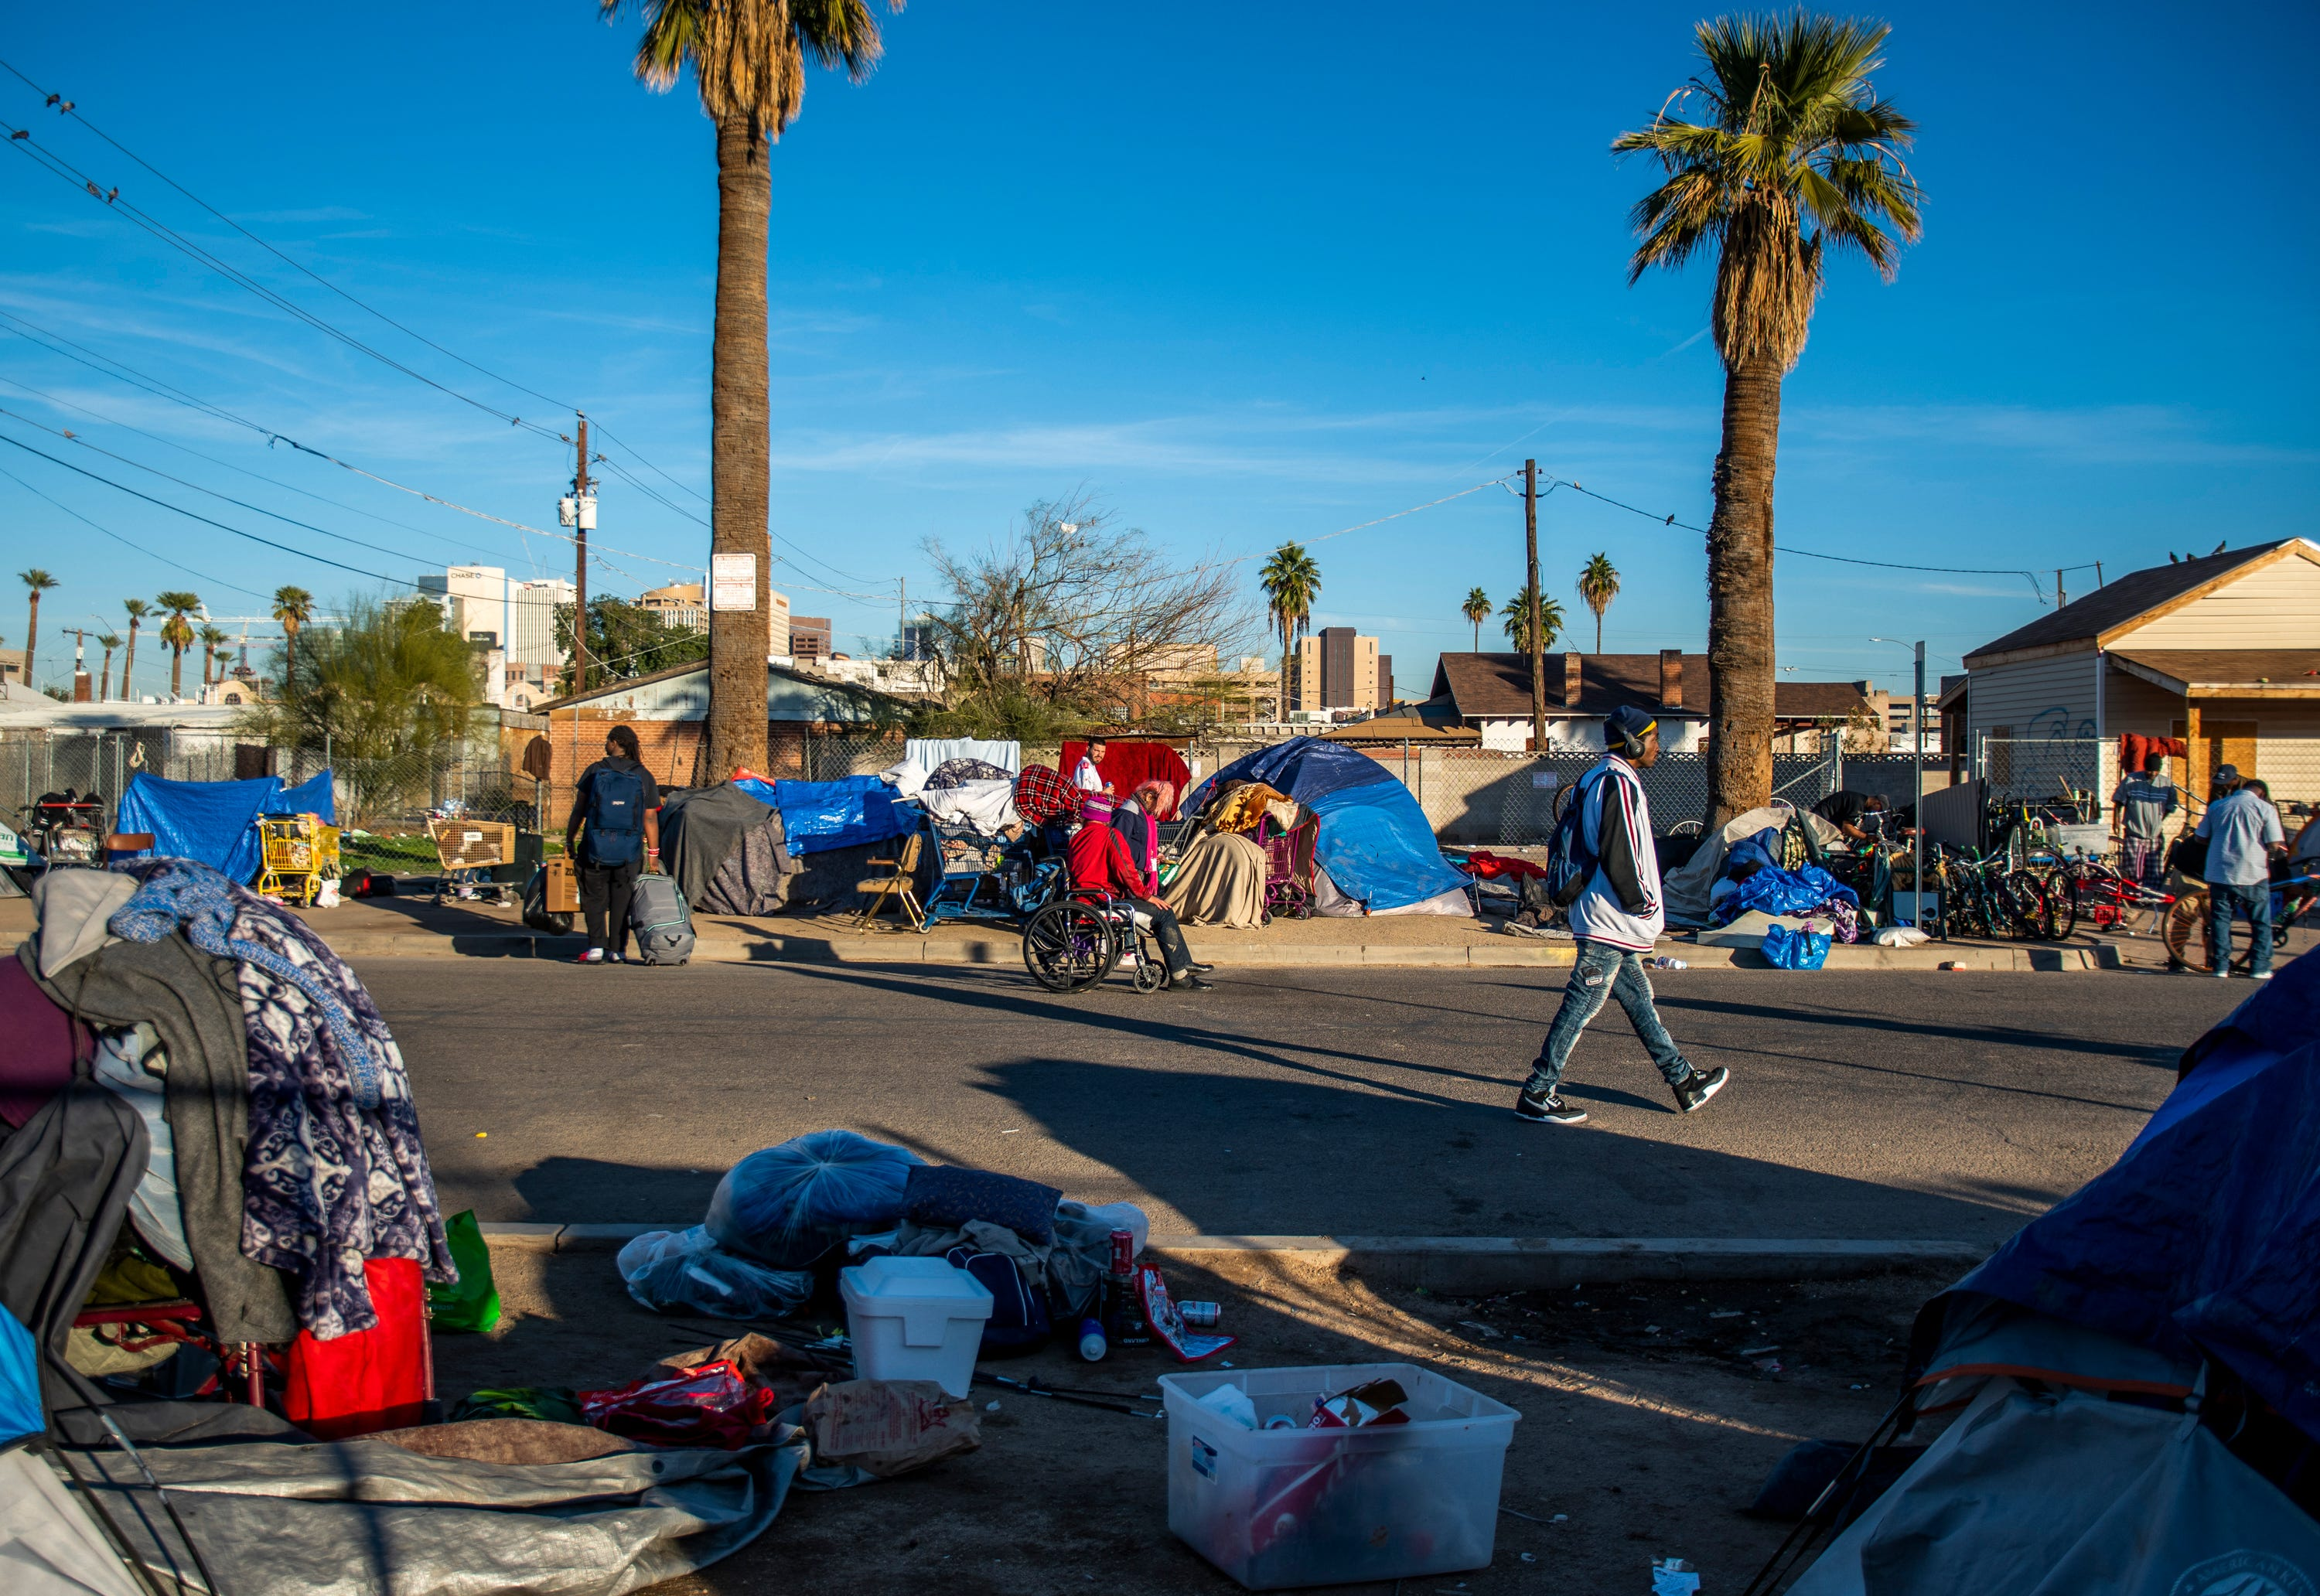 Dozens of tents are seen on the outskirts of downtown Phoenix on Jan. 3, 2020.